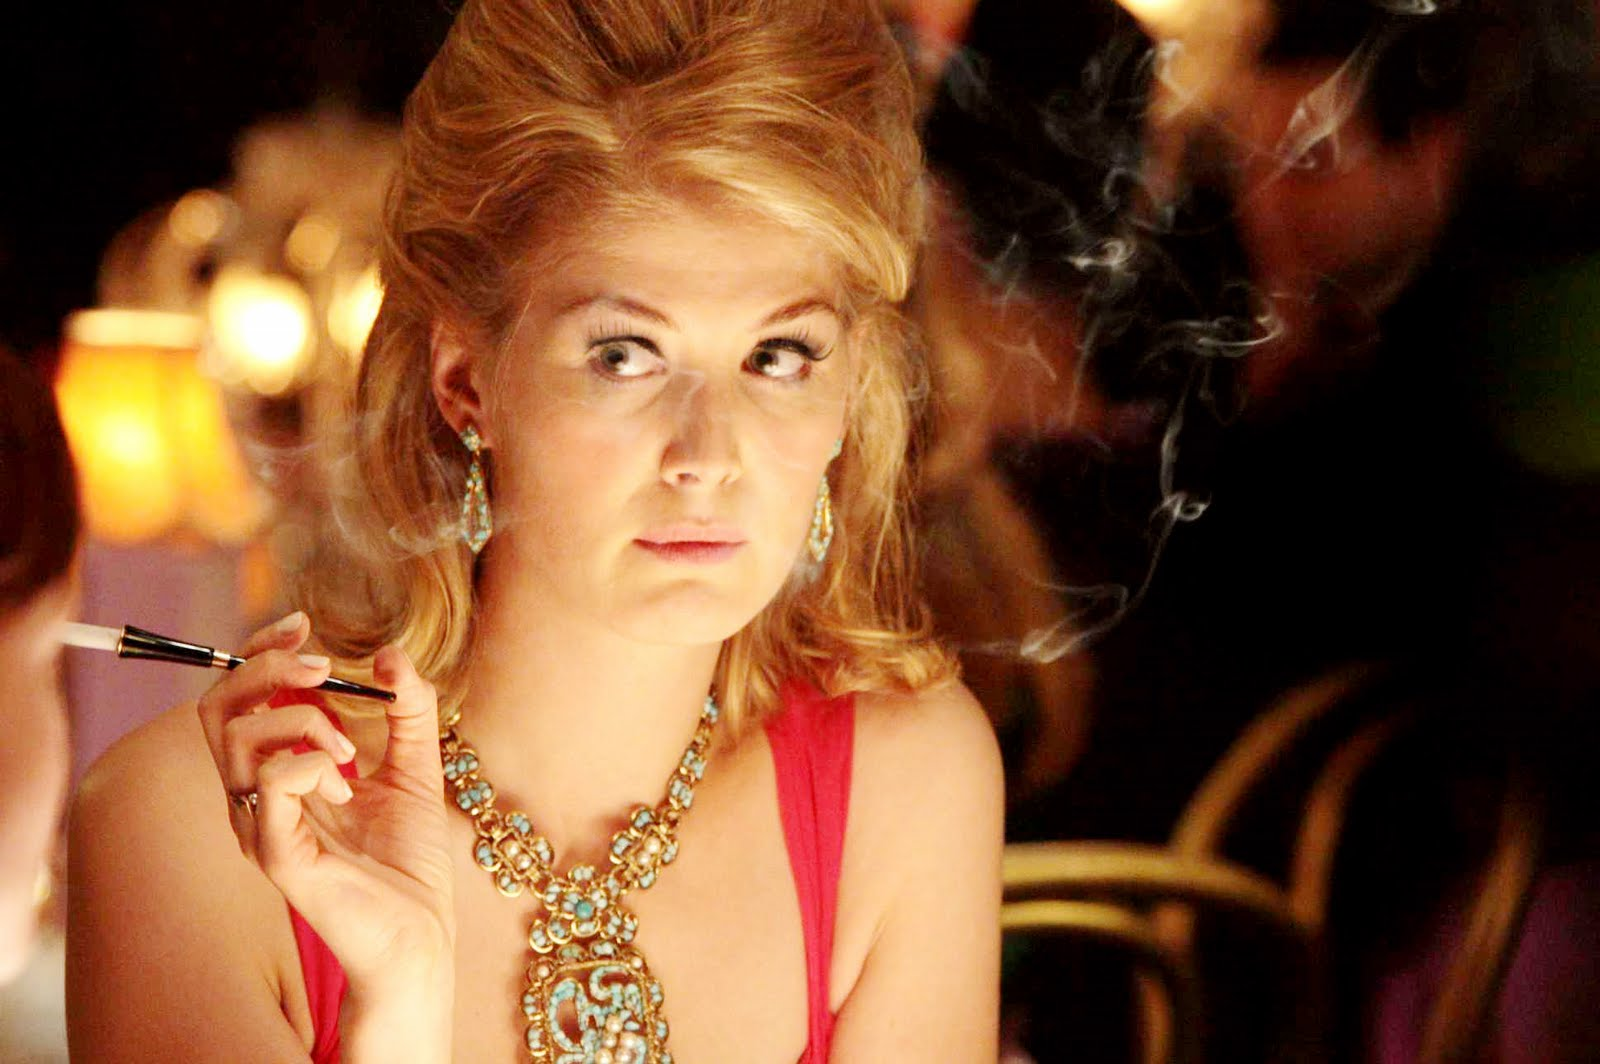 Rosamund Pike has such a distinct look and played the role of Helen so well.